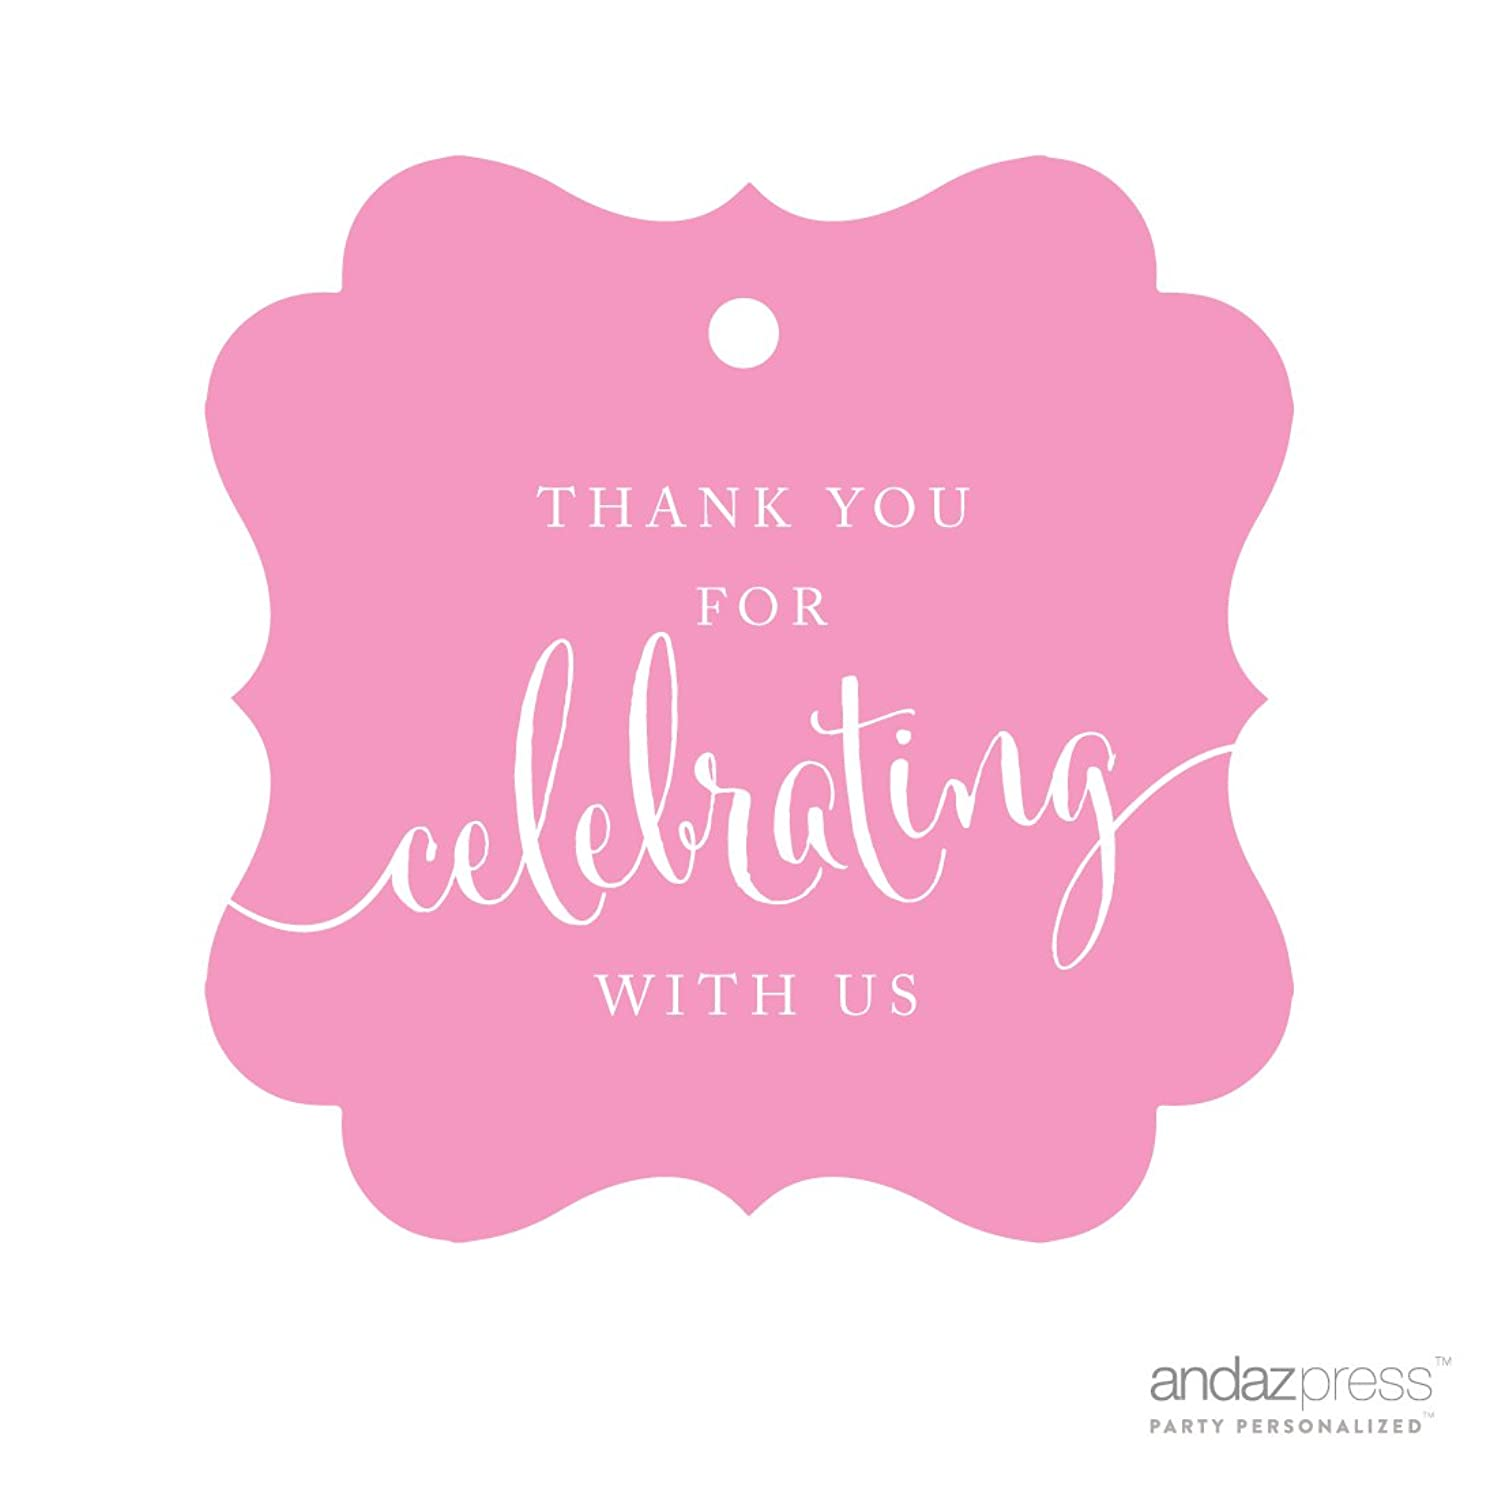 Andaz Press Fancy Frame Gift Tags, Thank You For Celebrating With Us, Pink, 24-Pack, For Baby Bridal Wedding Shower, Kids 1st Sweet 16 Quinceanera Birthdays, Anniversary, Graduation, Baptism, Christening, Confirmation, Communion Party Favors, Gifts, Boxes, Bags, Treats and Presents